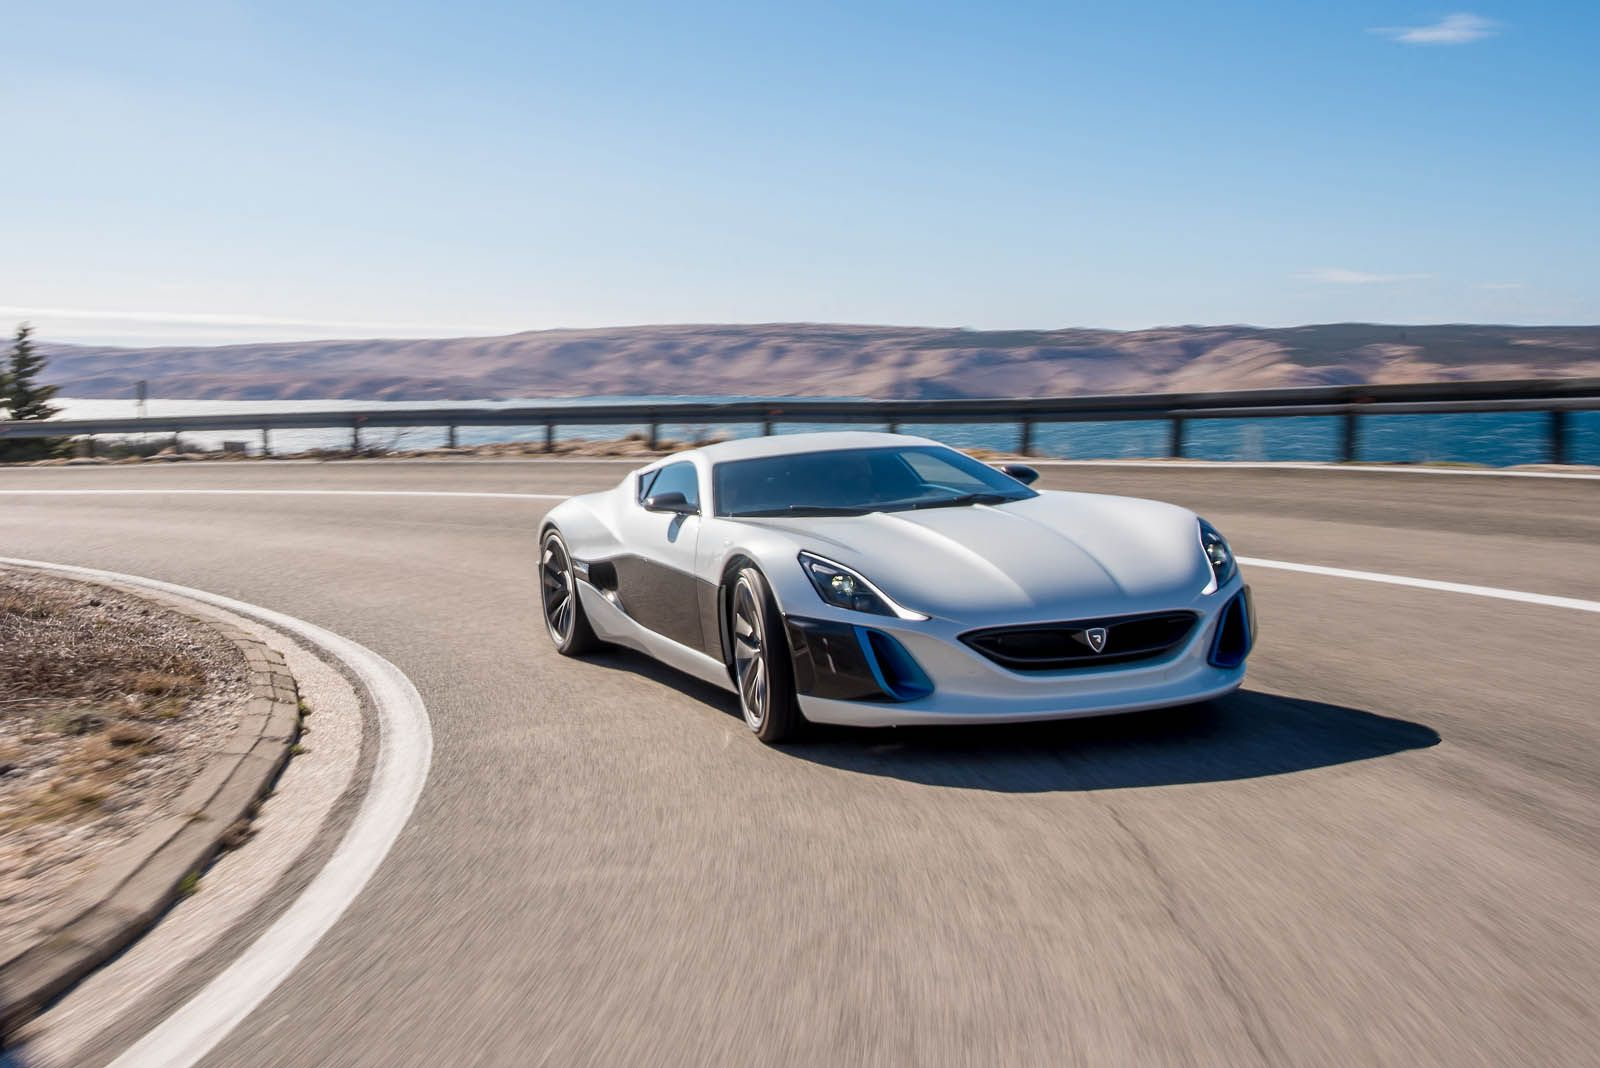 Rimac C Two The Hypercar We Have Been Waiting For Super Cars Concept Cars Cars